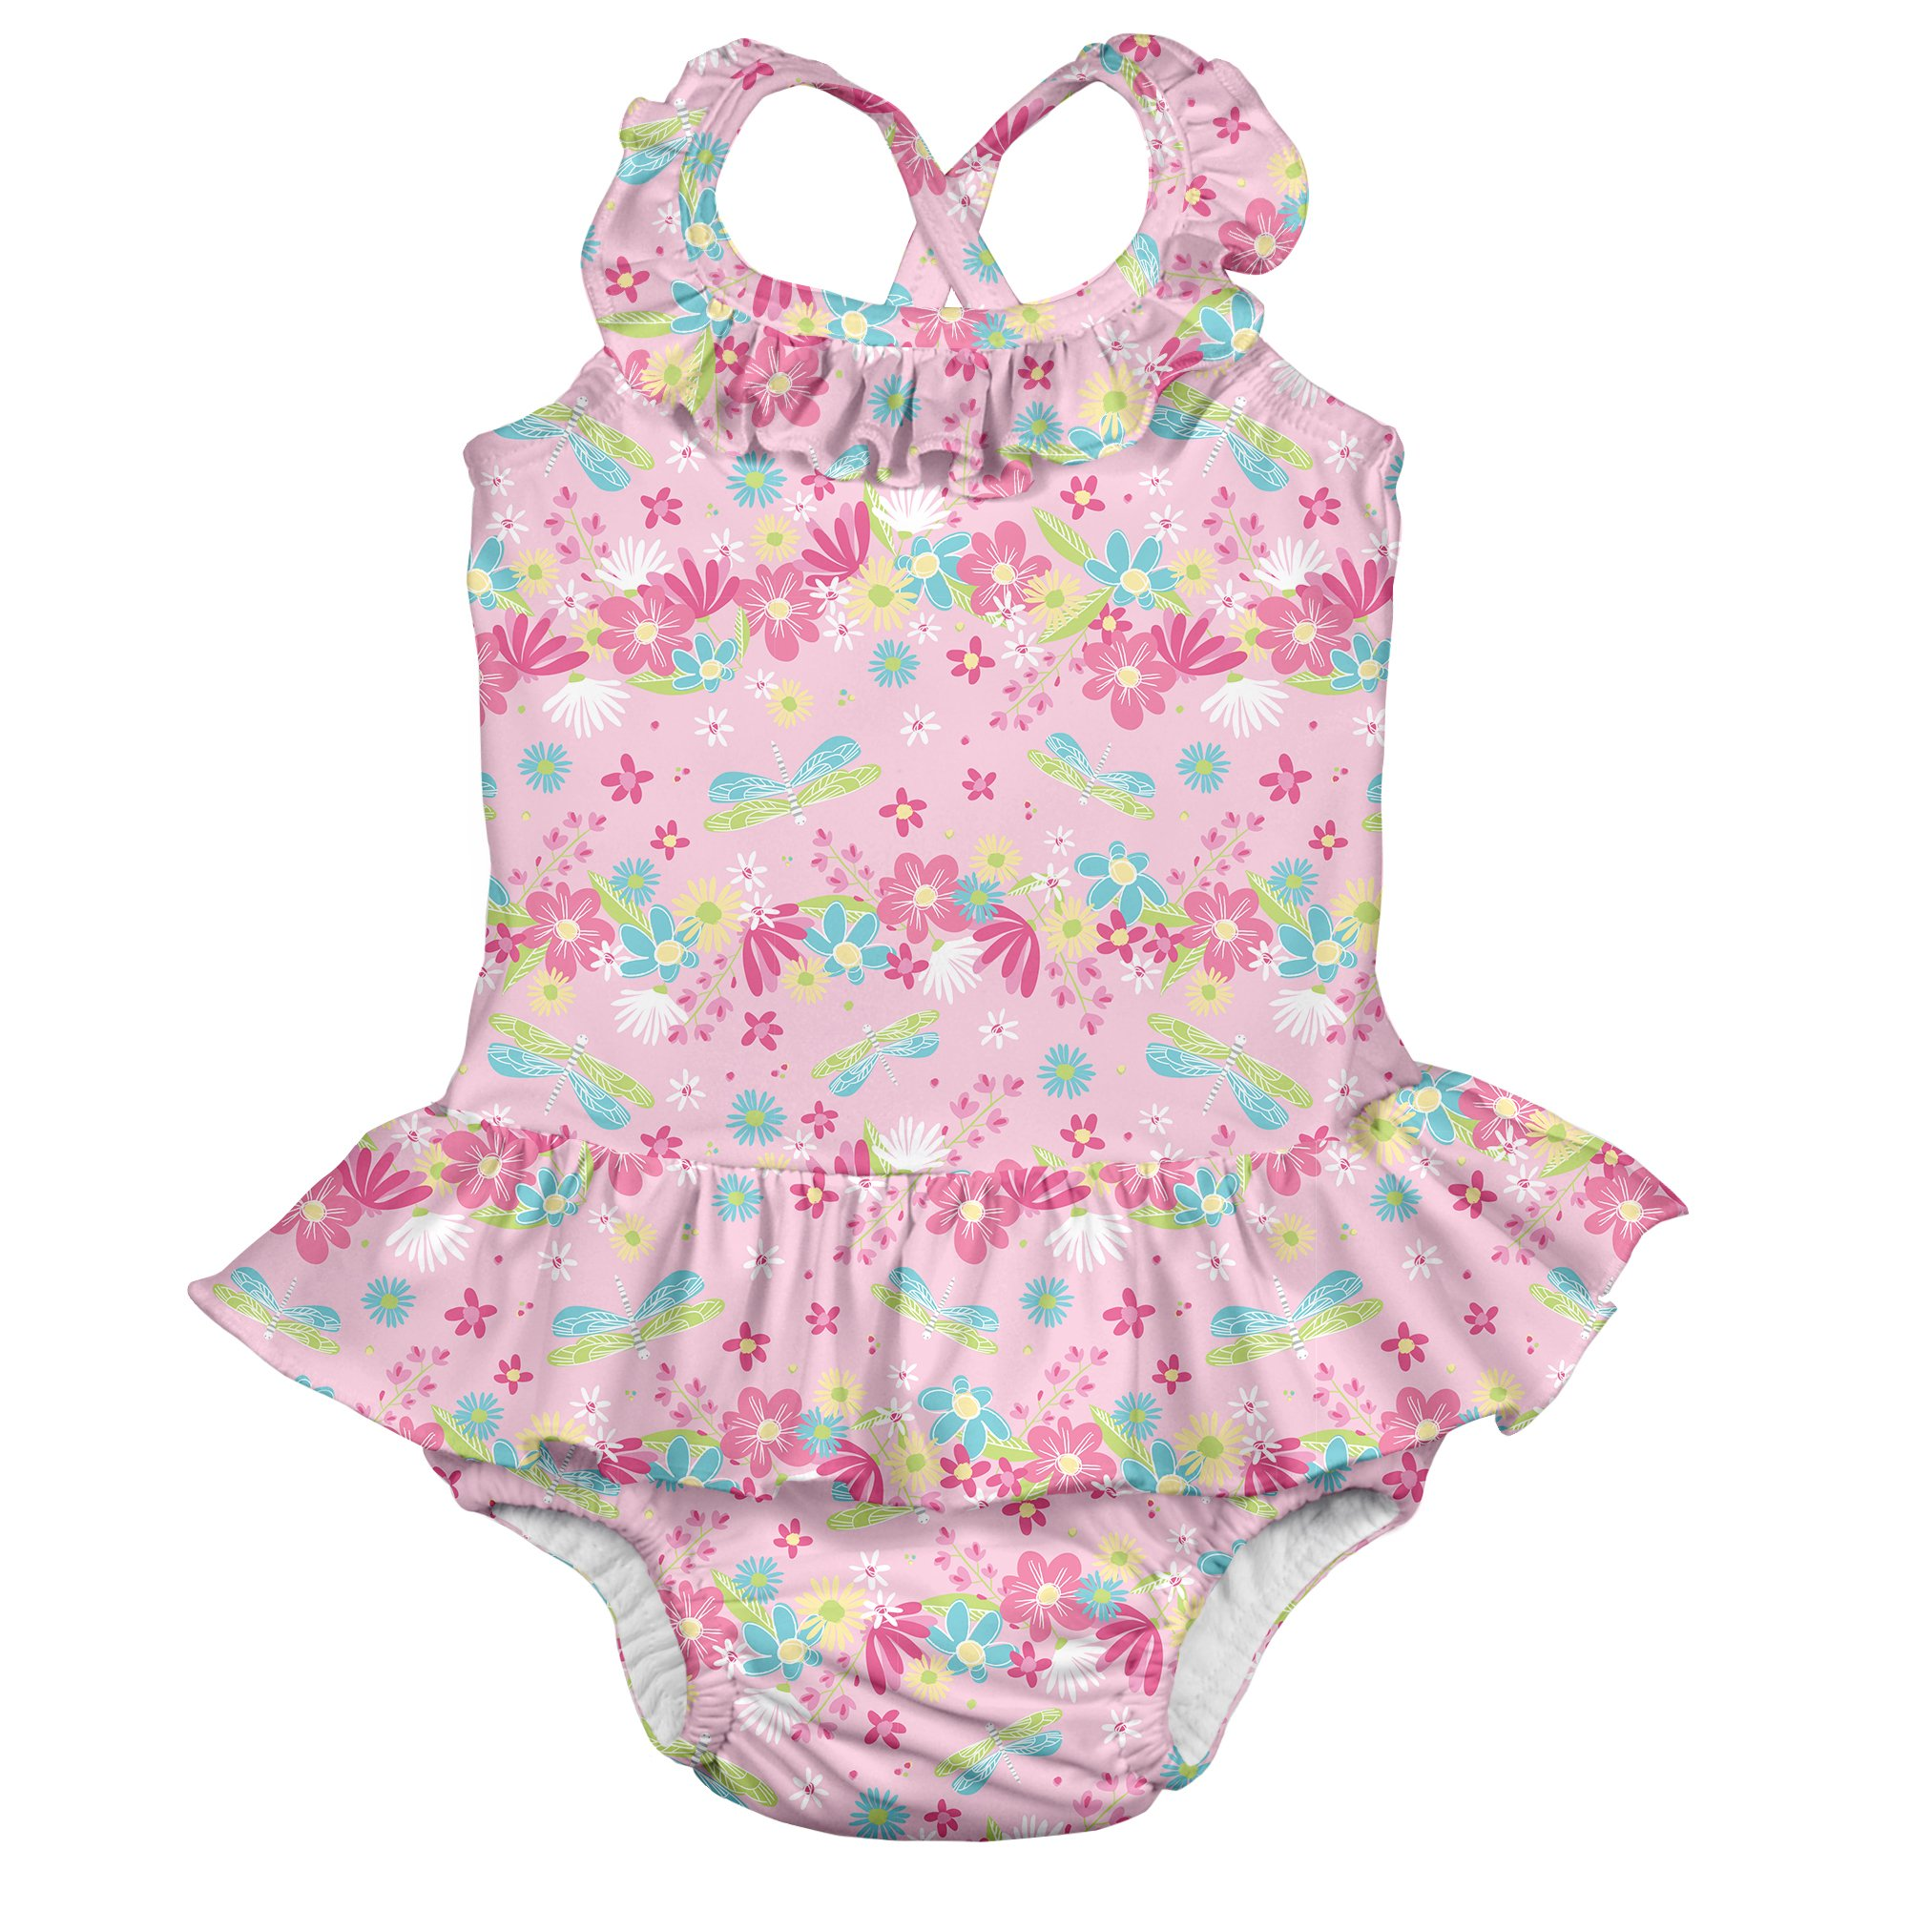 7d8fe20e7f6b3 Girls' 1pc Ruffle Swimsuit with Built-in Reusable Absorbent Swim Diaper